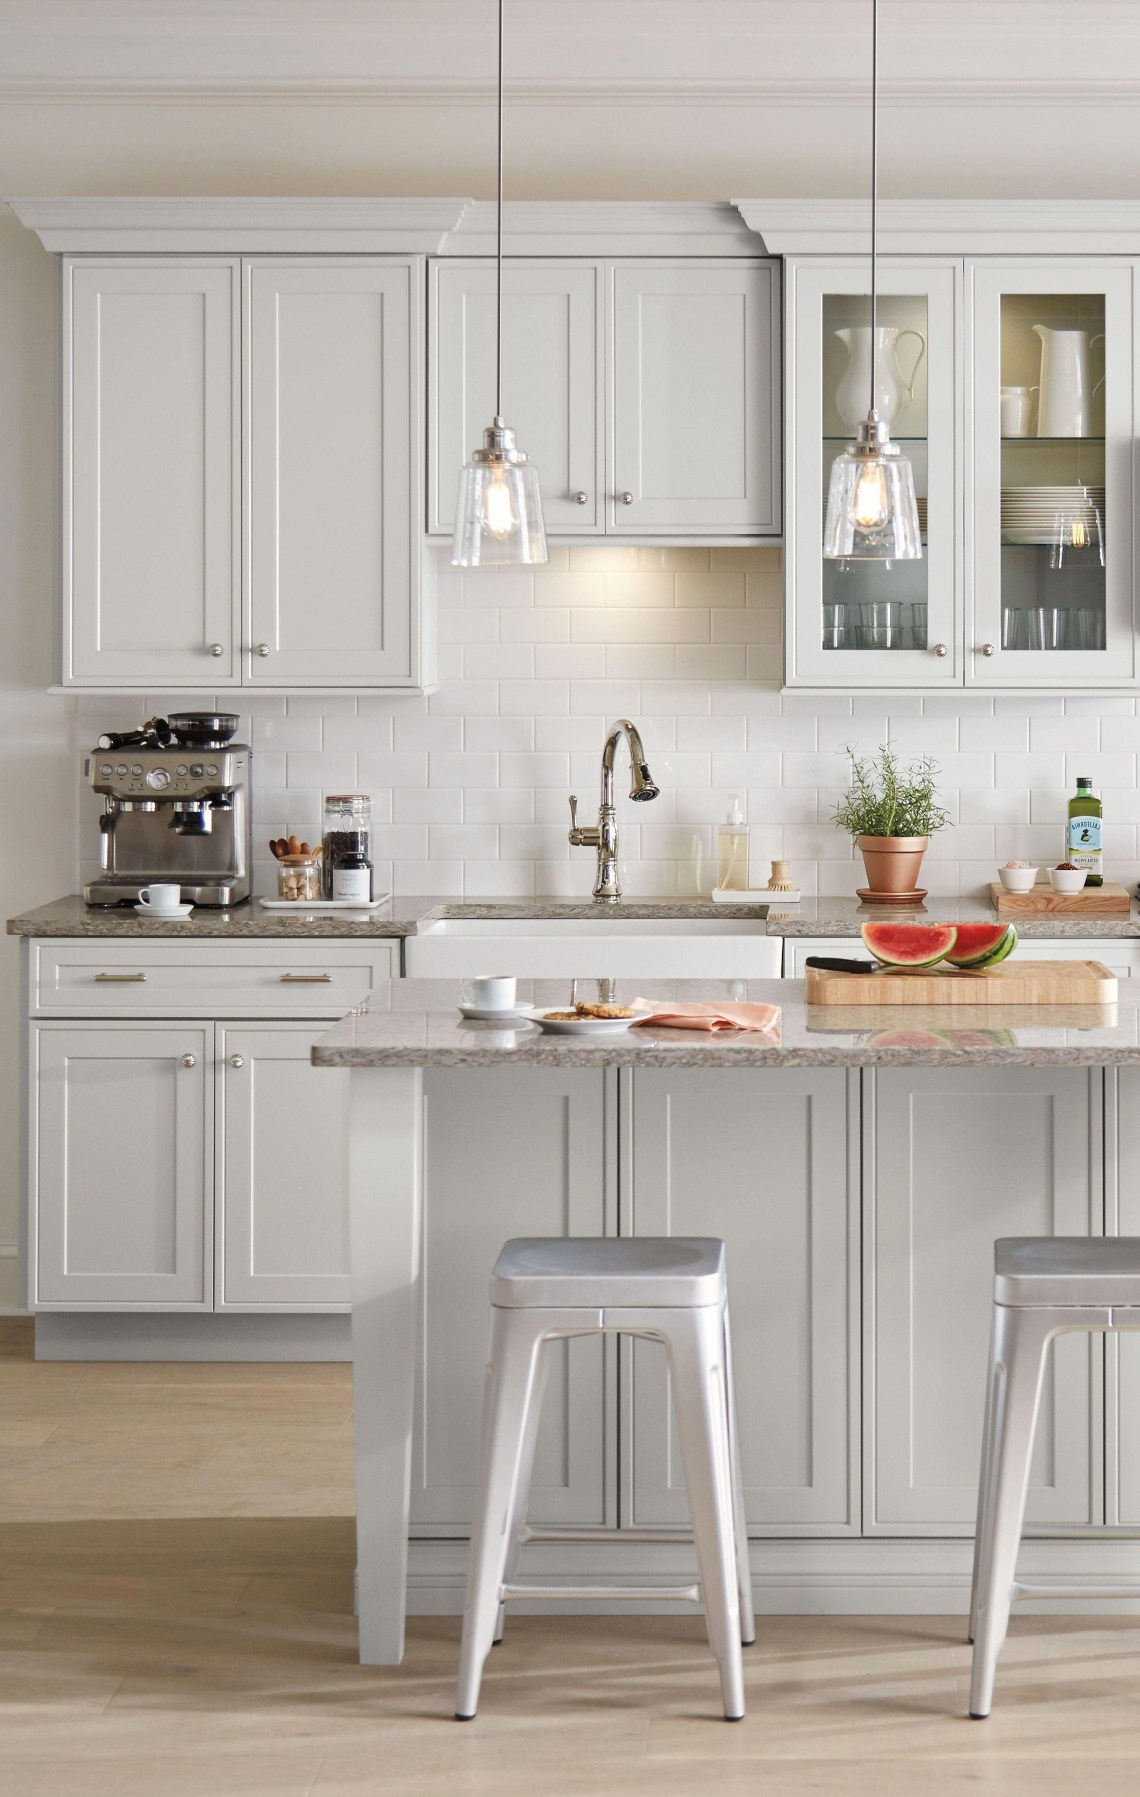 Martha Stewart Living Kitchens Available Only At The Home Depot Offer More Than 75 Beautiful